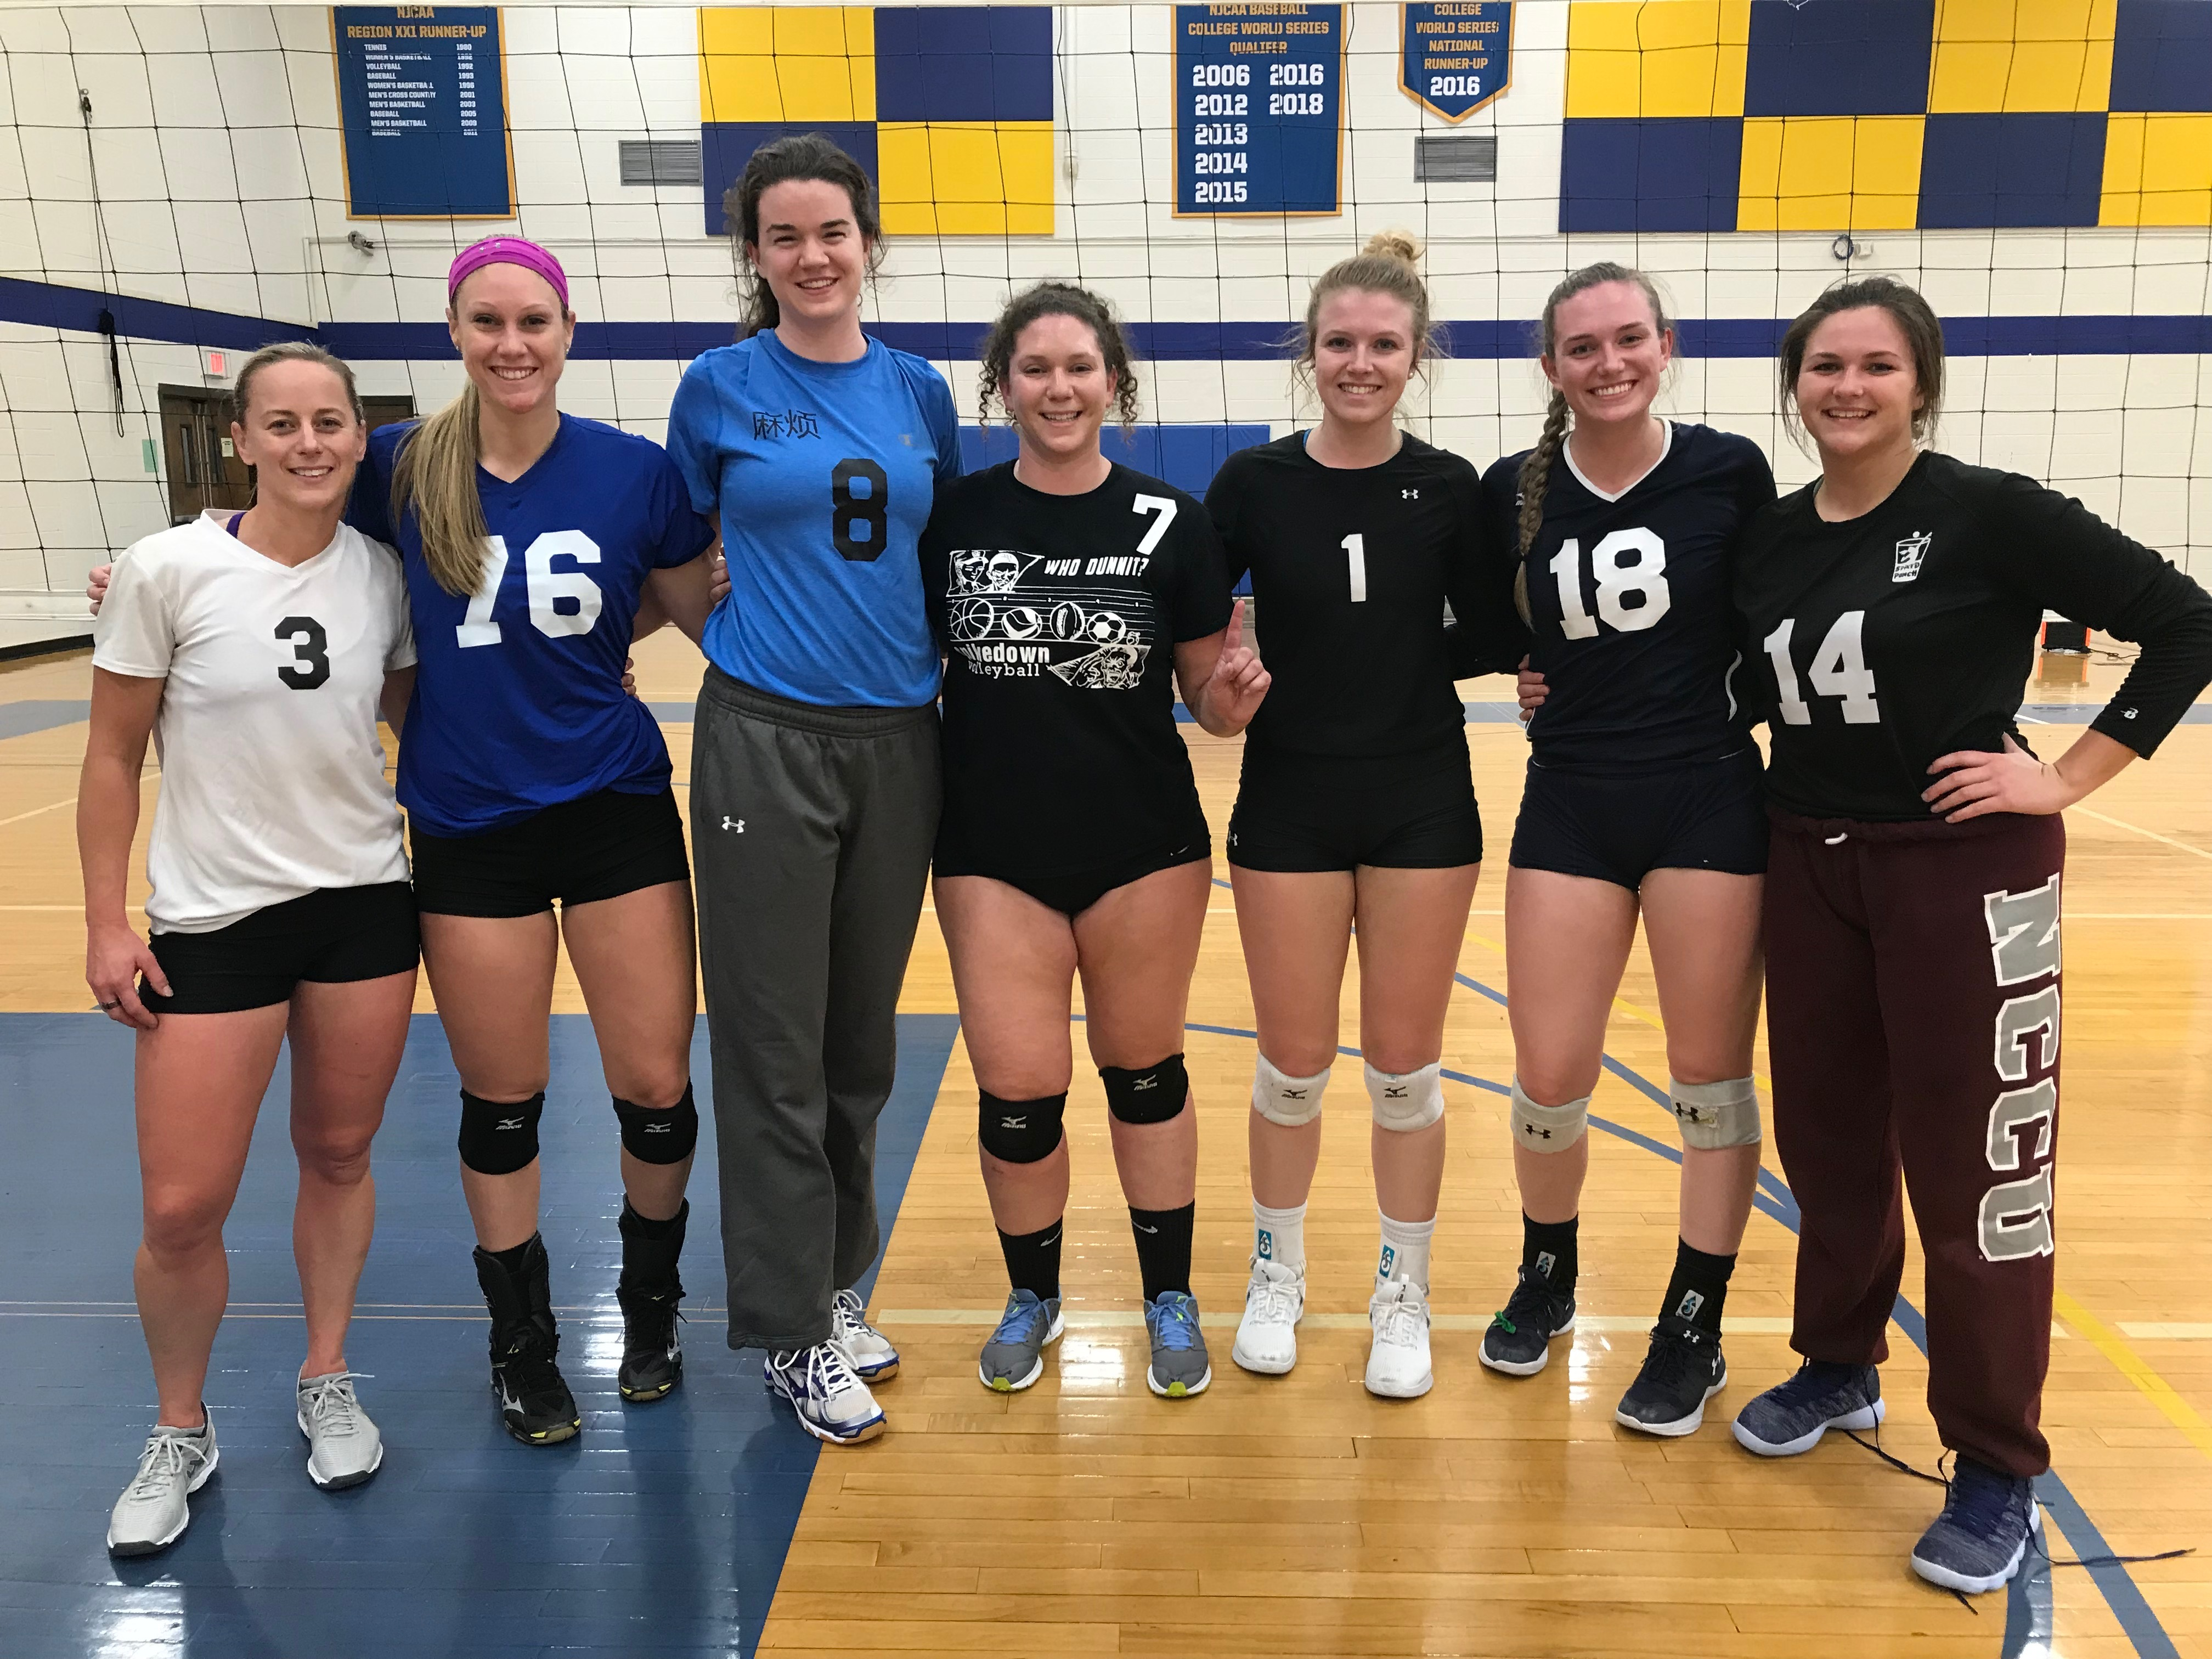 12/02/2018 WB Champions - *Insert Volleyball Pun Here*